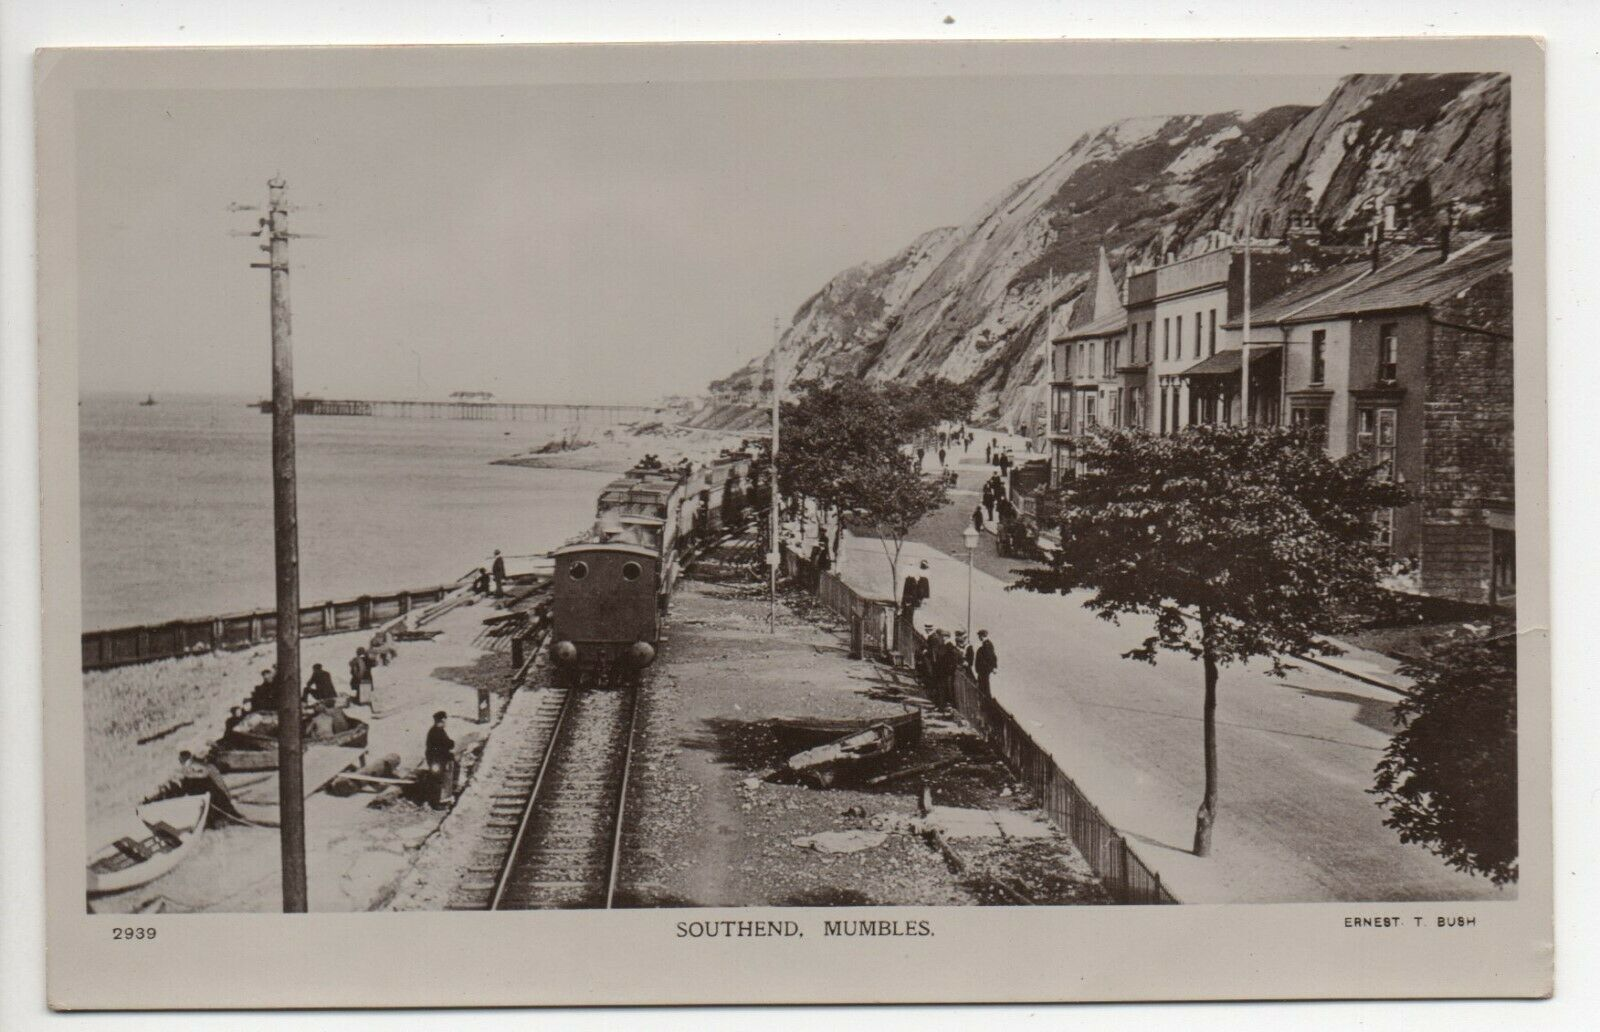 Southend Mumbles near Swansea Glamorgan by Ernest T - By Rail to the Mumbles